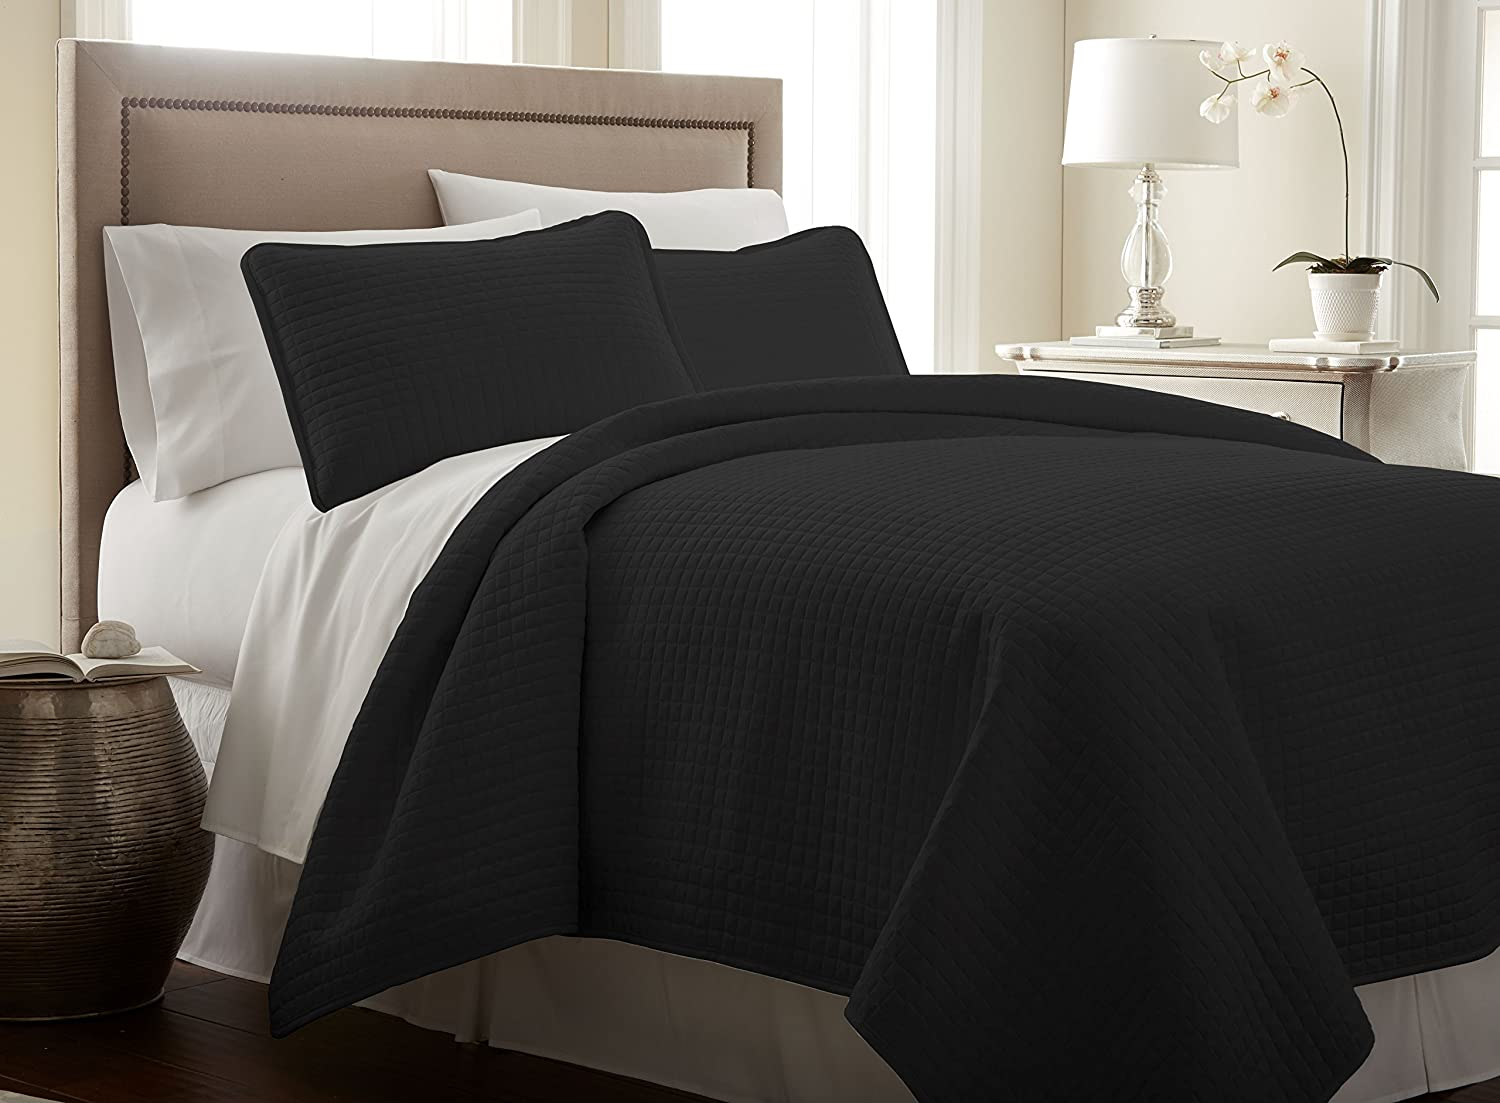 Southshore Fine Linens 3 Piece Oversized Quilt Sets Queen, Black